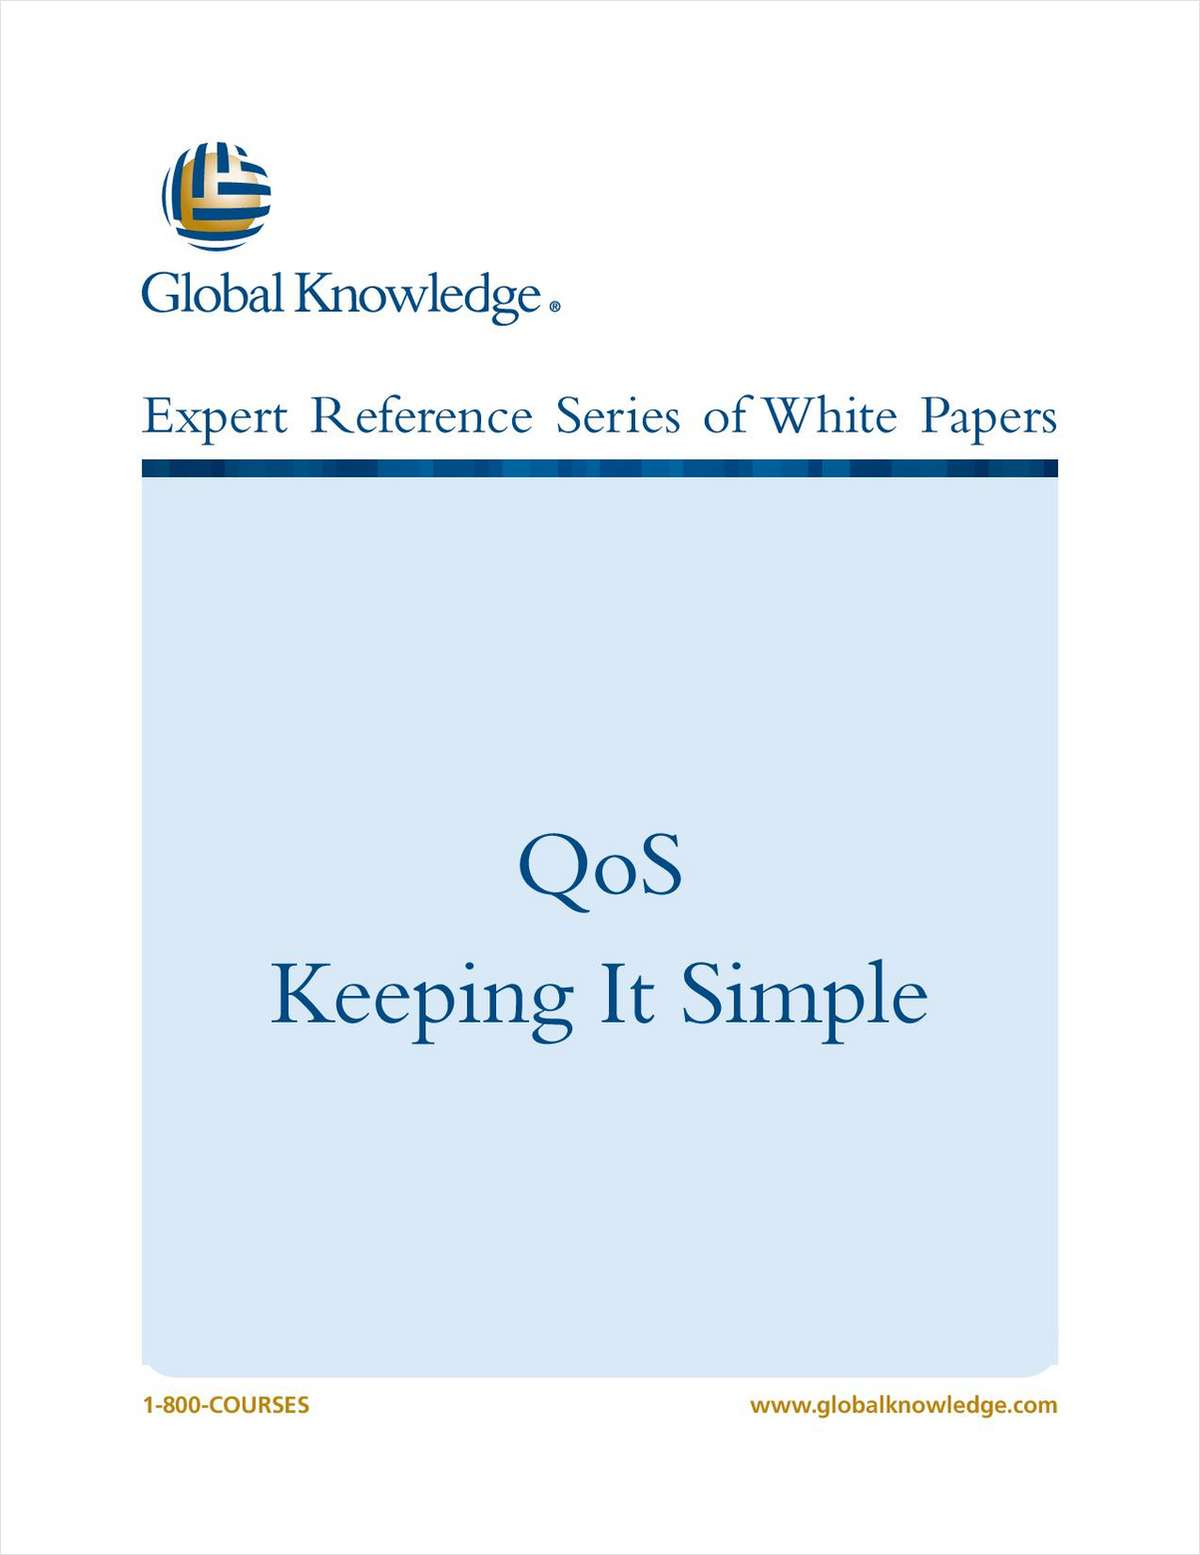 QoS, Keeping it Simple